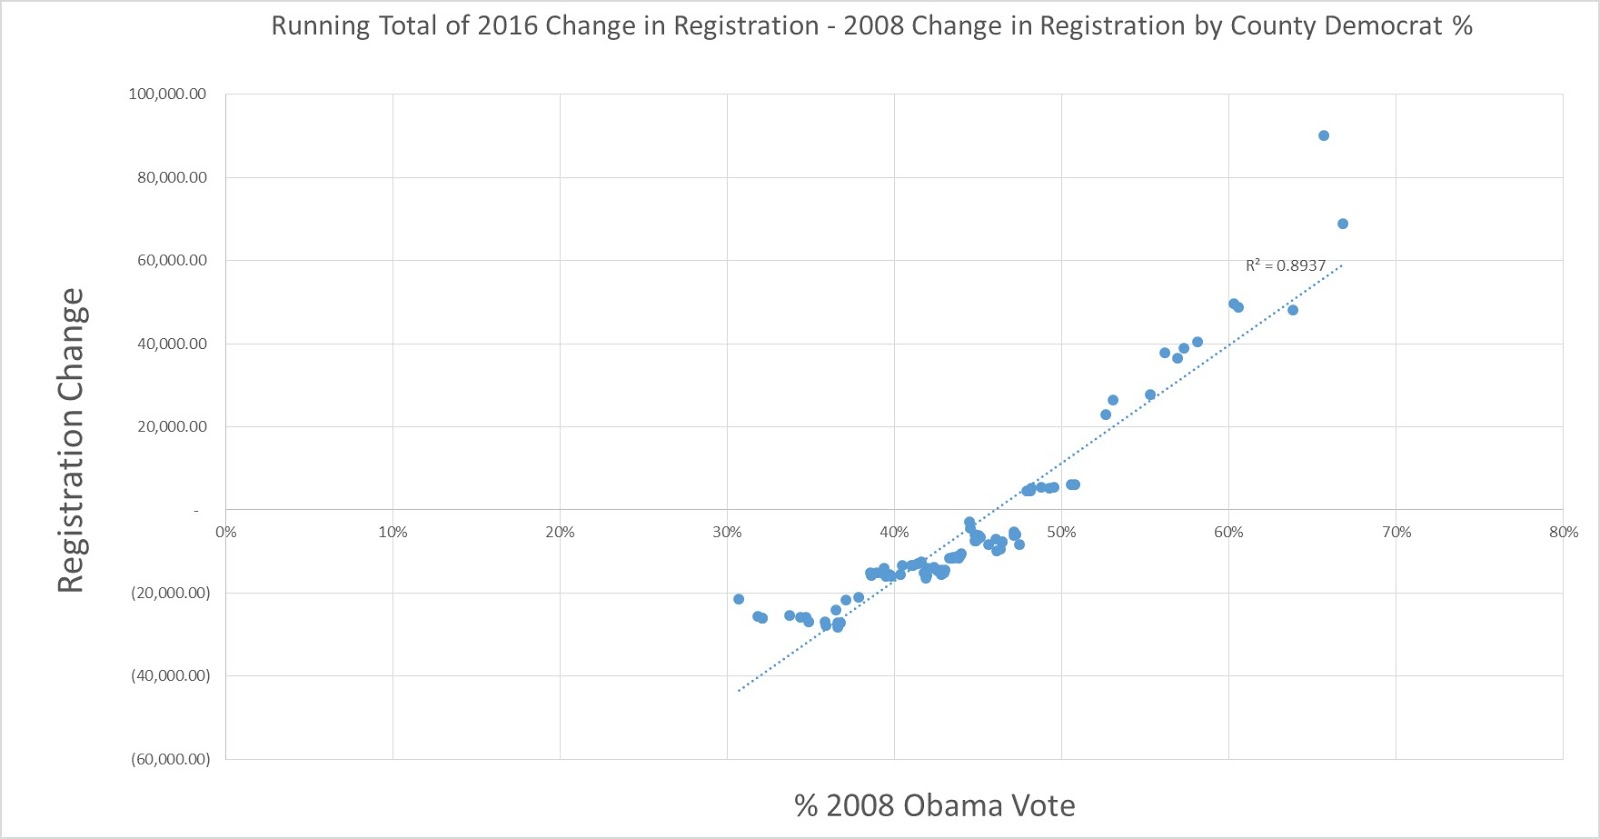 the truth is that most of these races were pretty much set when voter registration ended and for indiana that was 30 days before the election